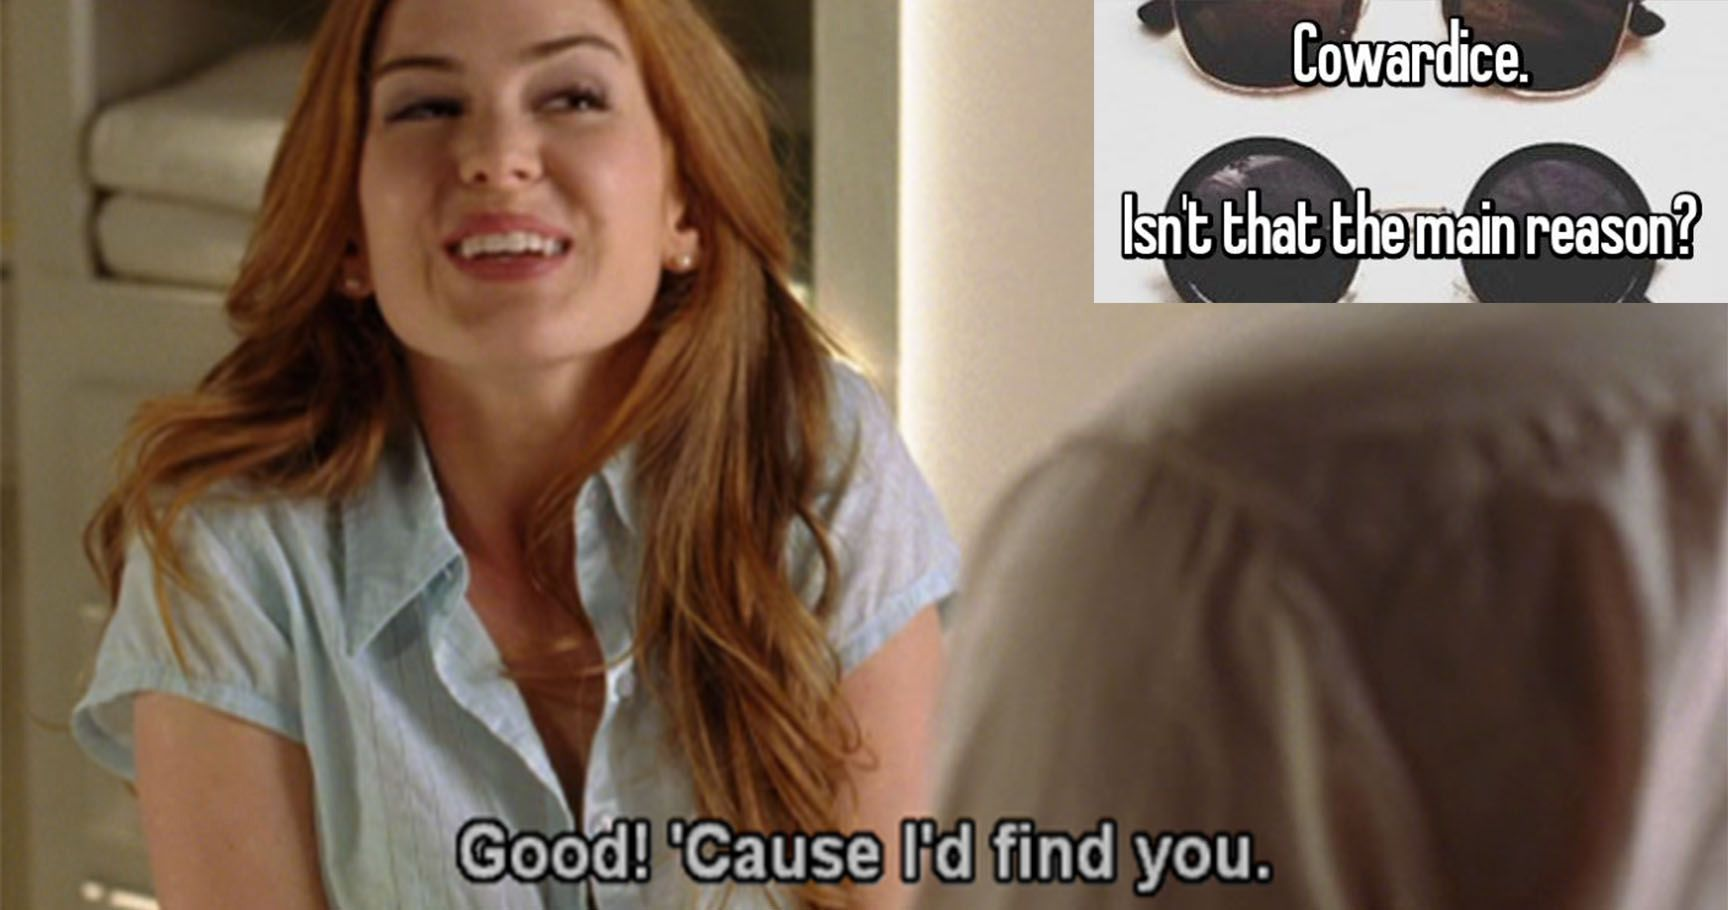 Whisper Confessions: 15 Rude Reasons People Have For Ghosting Someone